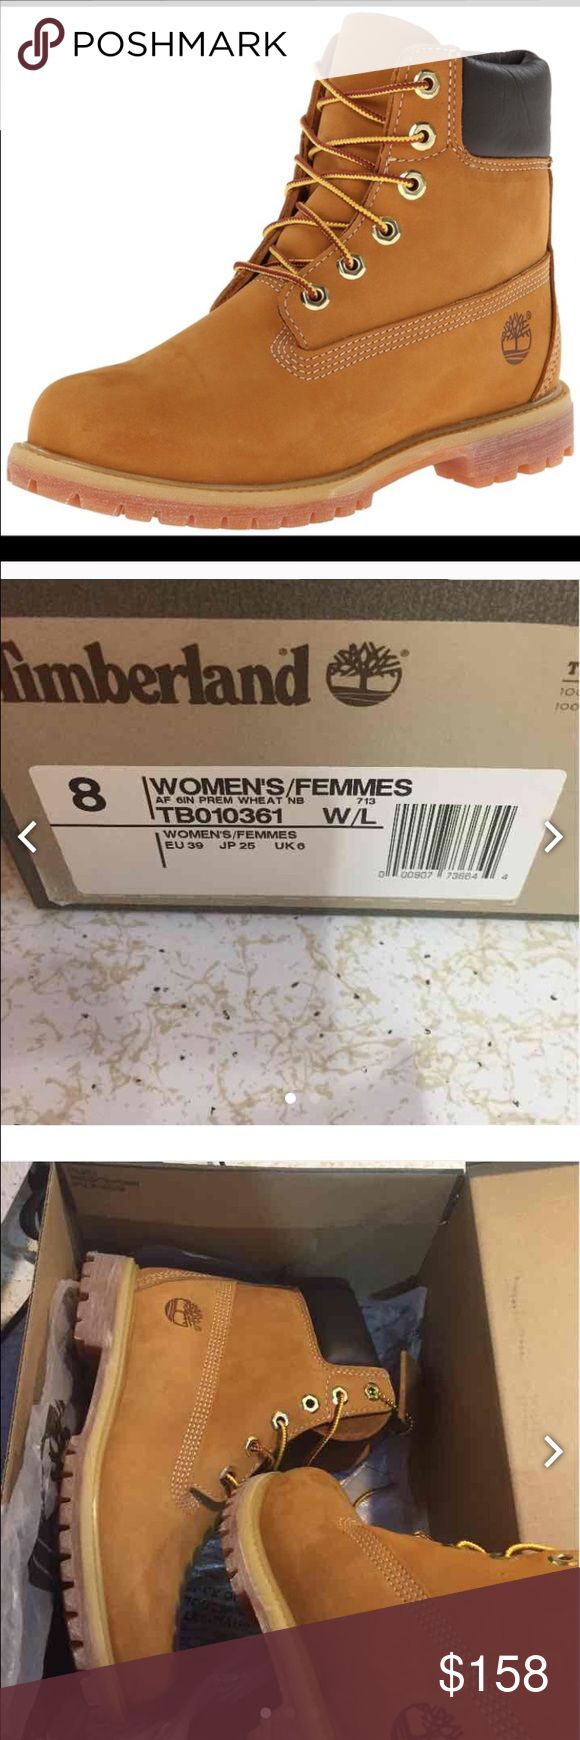 New Premium Timberland boots size 8 Get it in time for XMAS New Premium Wheat Timberland boots size 8.  Retail 169.00 Great for Christmas. Leather upper, lace up booties.  Will not qualify for bundle discount. Timberland Shoes Ankle Boots & Booties